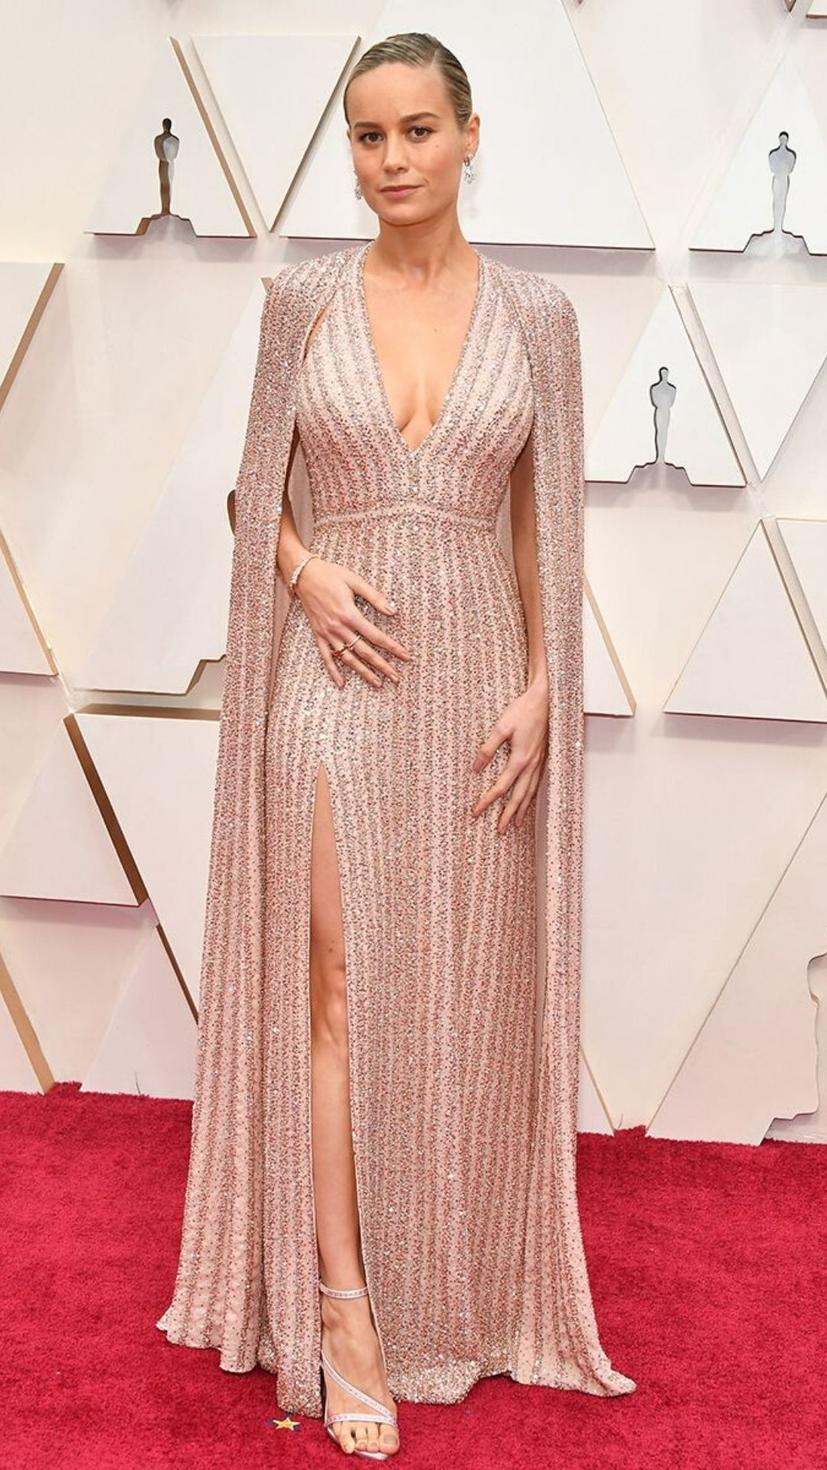 Brie Larson wears a gown from Celine and jewellery from Bulgari